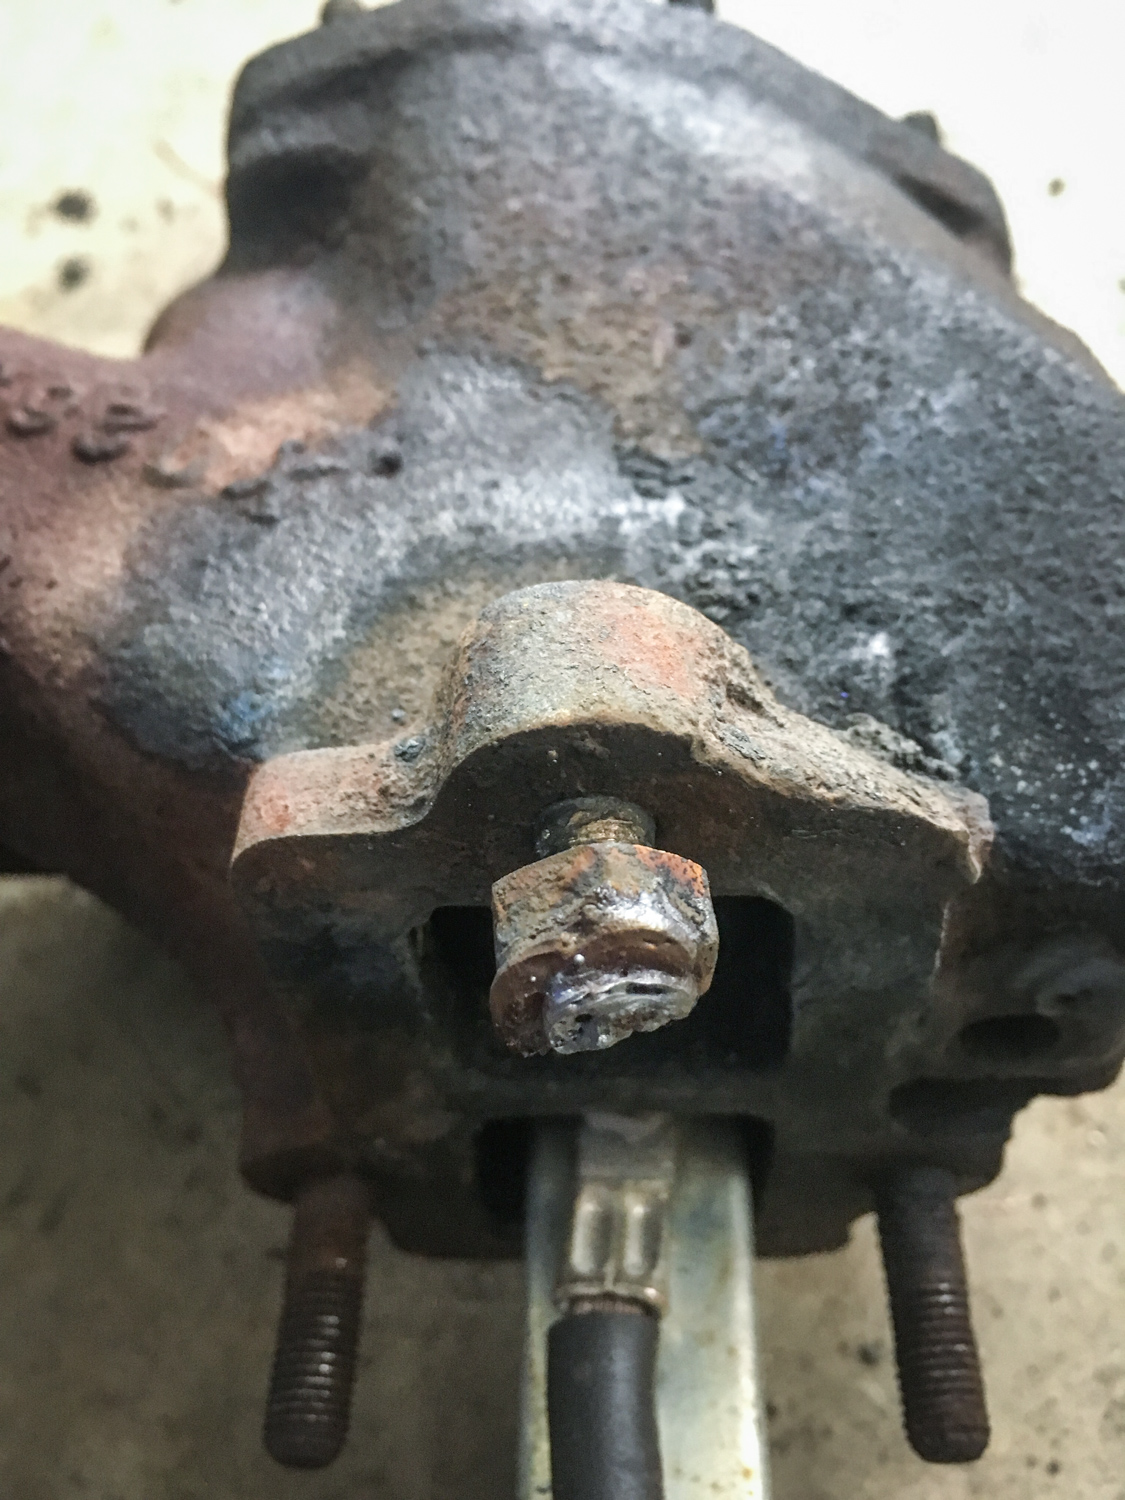 Nut welding attempt #1.